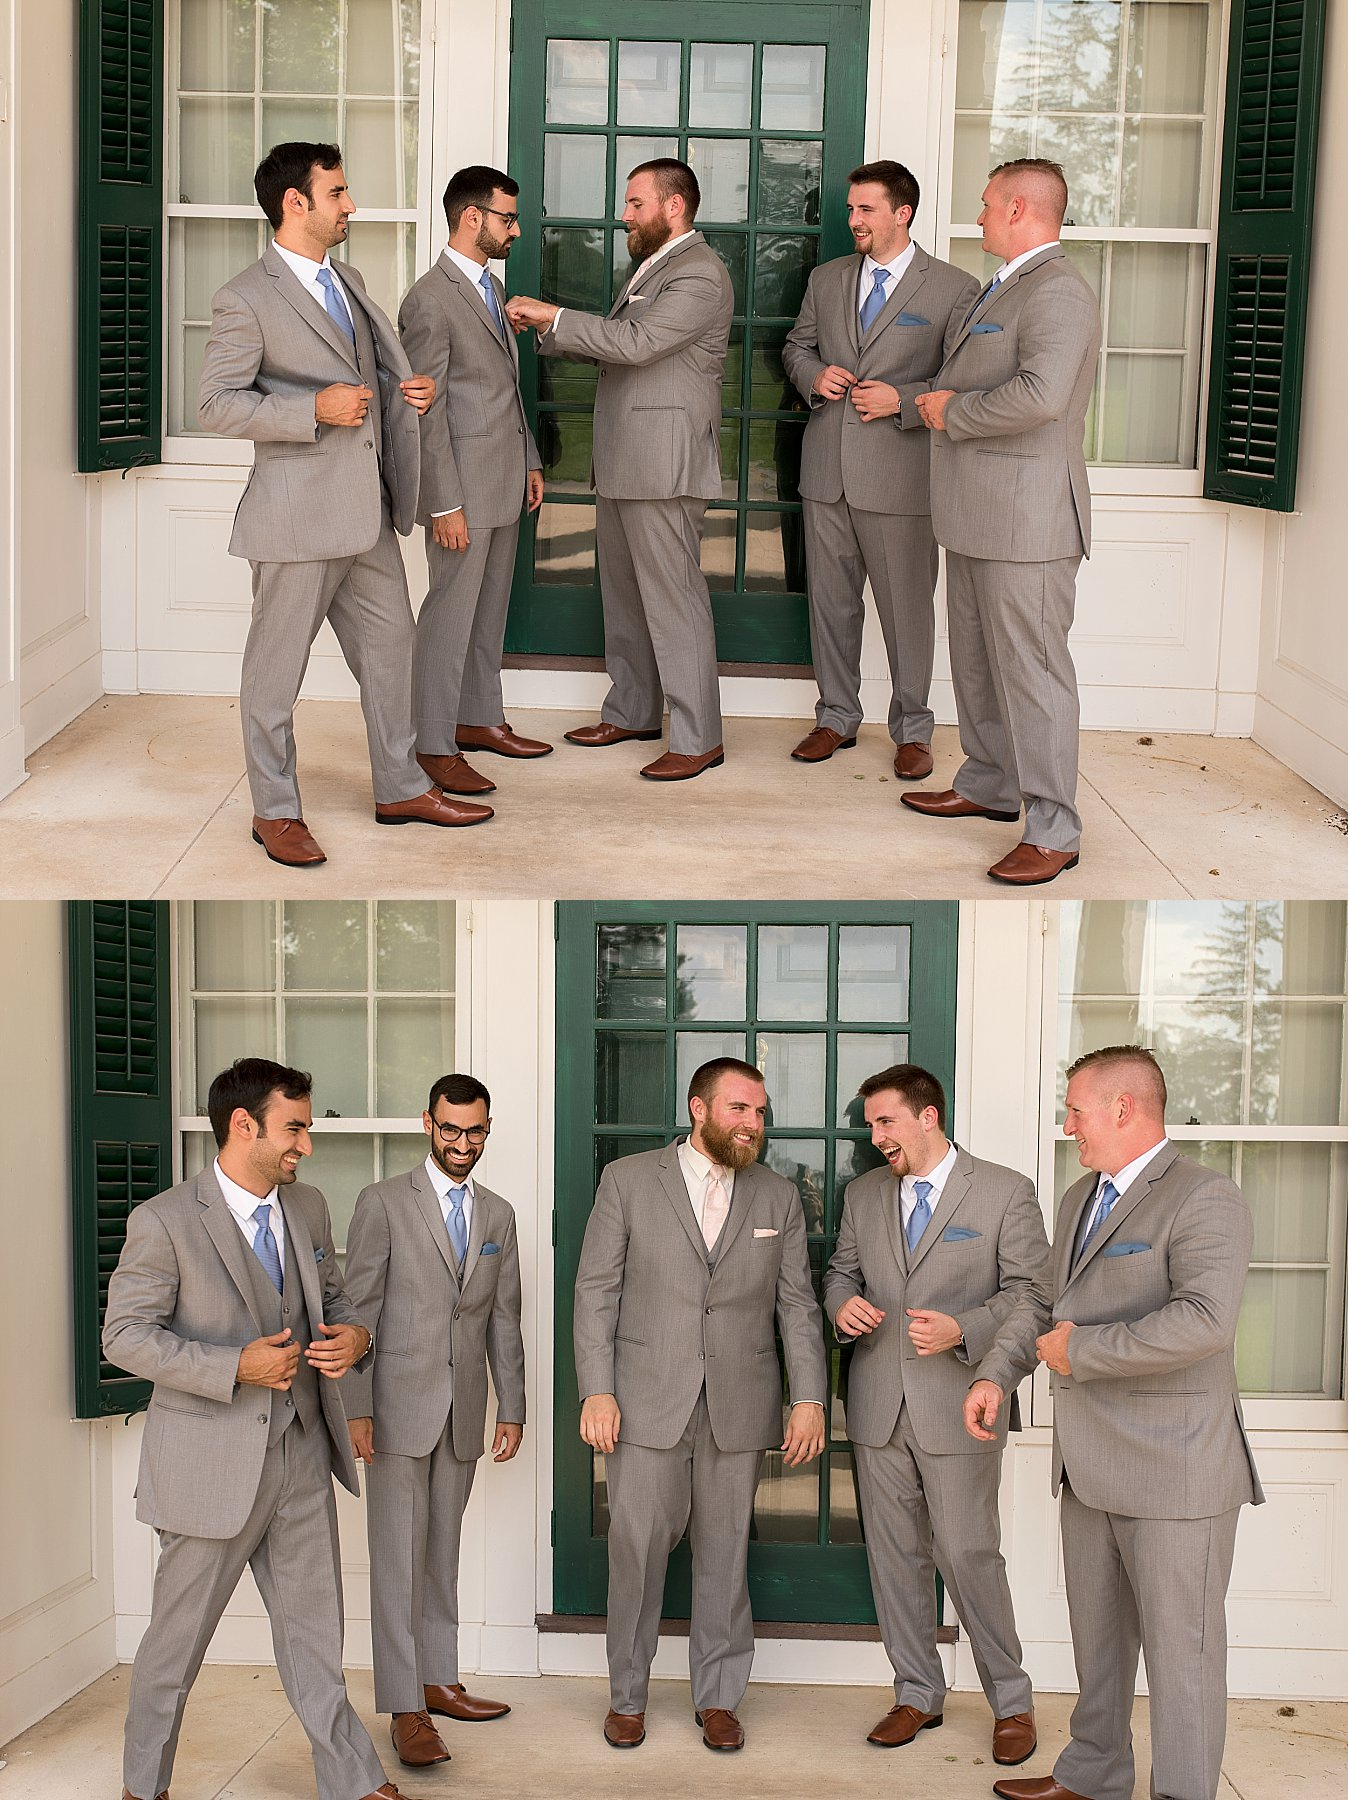 Groom and groomsmen getting ready for wedding in Hartford County, CT